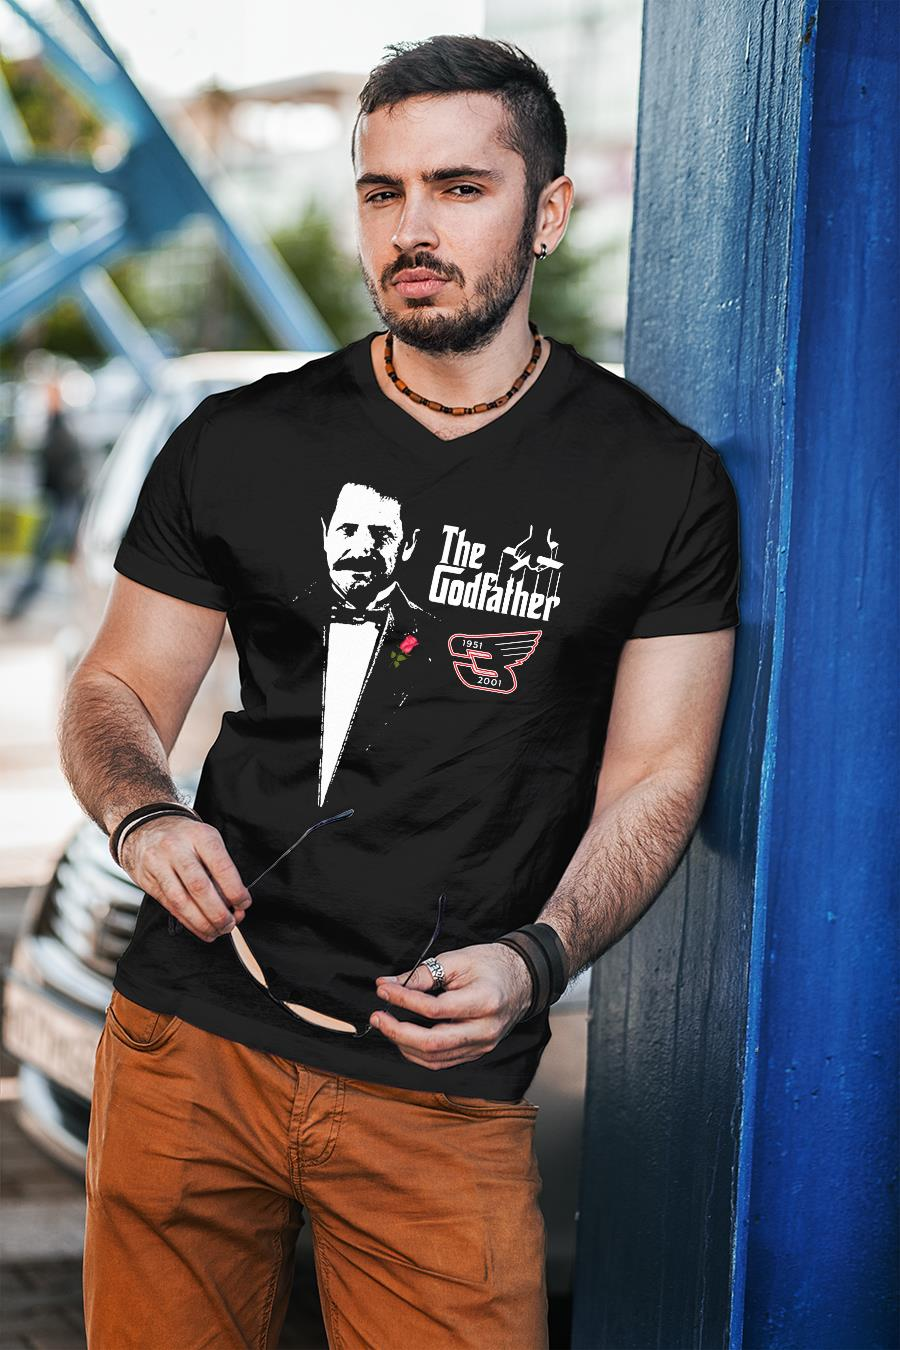 Dale Earnhardt The Godfather 1951-2001 shirt unisex